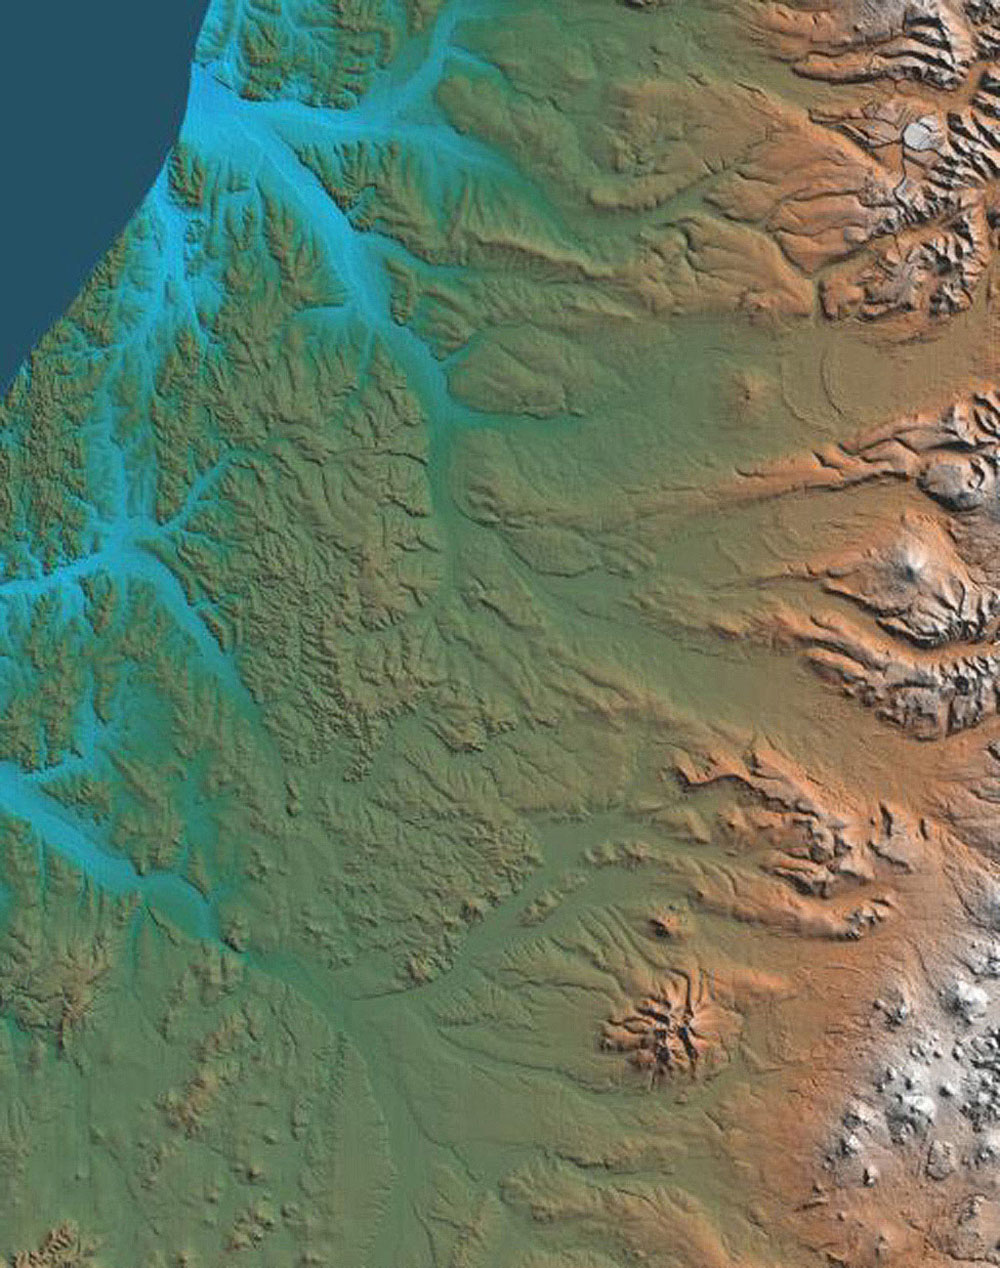 This topographic map acquired by NASA's Shuttle Radar Topography Mission from data collected on February 12, 2000 shows the western side of the volcanically active Kamchatka Peninsula, Russia.